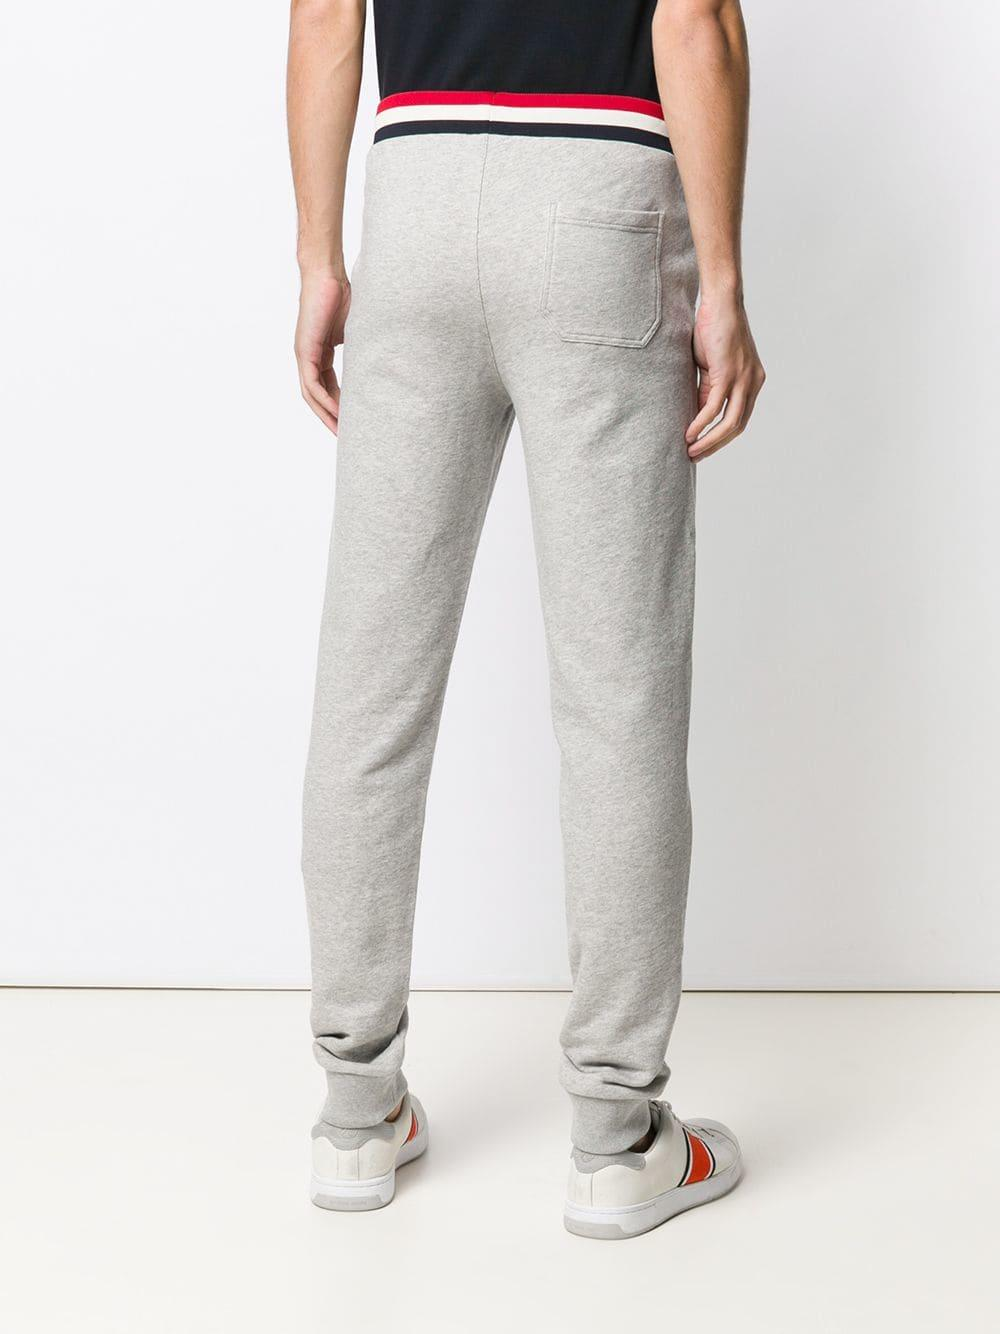 b84a5ff05930 Lyst - Moncler Striped Waistband Track Pants in Gray for Men